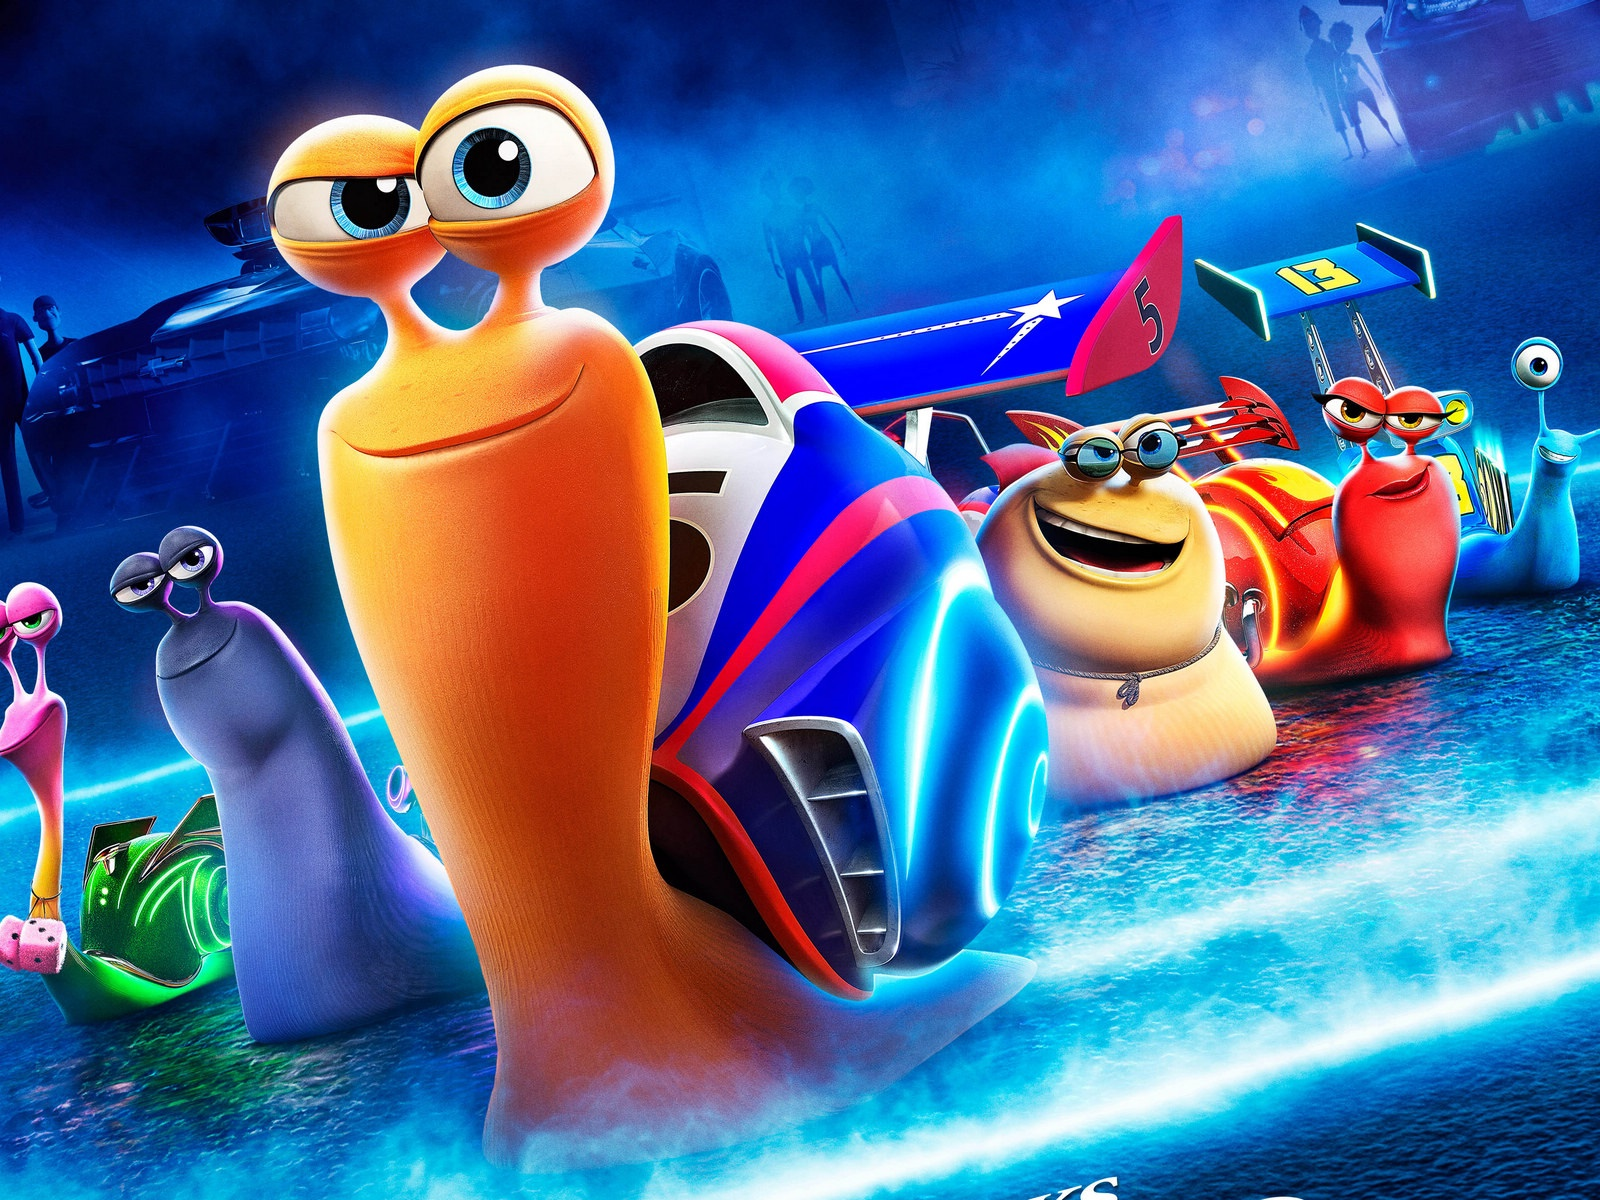 Turbo, cartoon movie 1600x1200 wallpaper